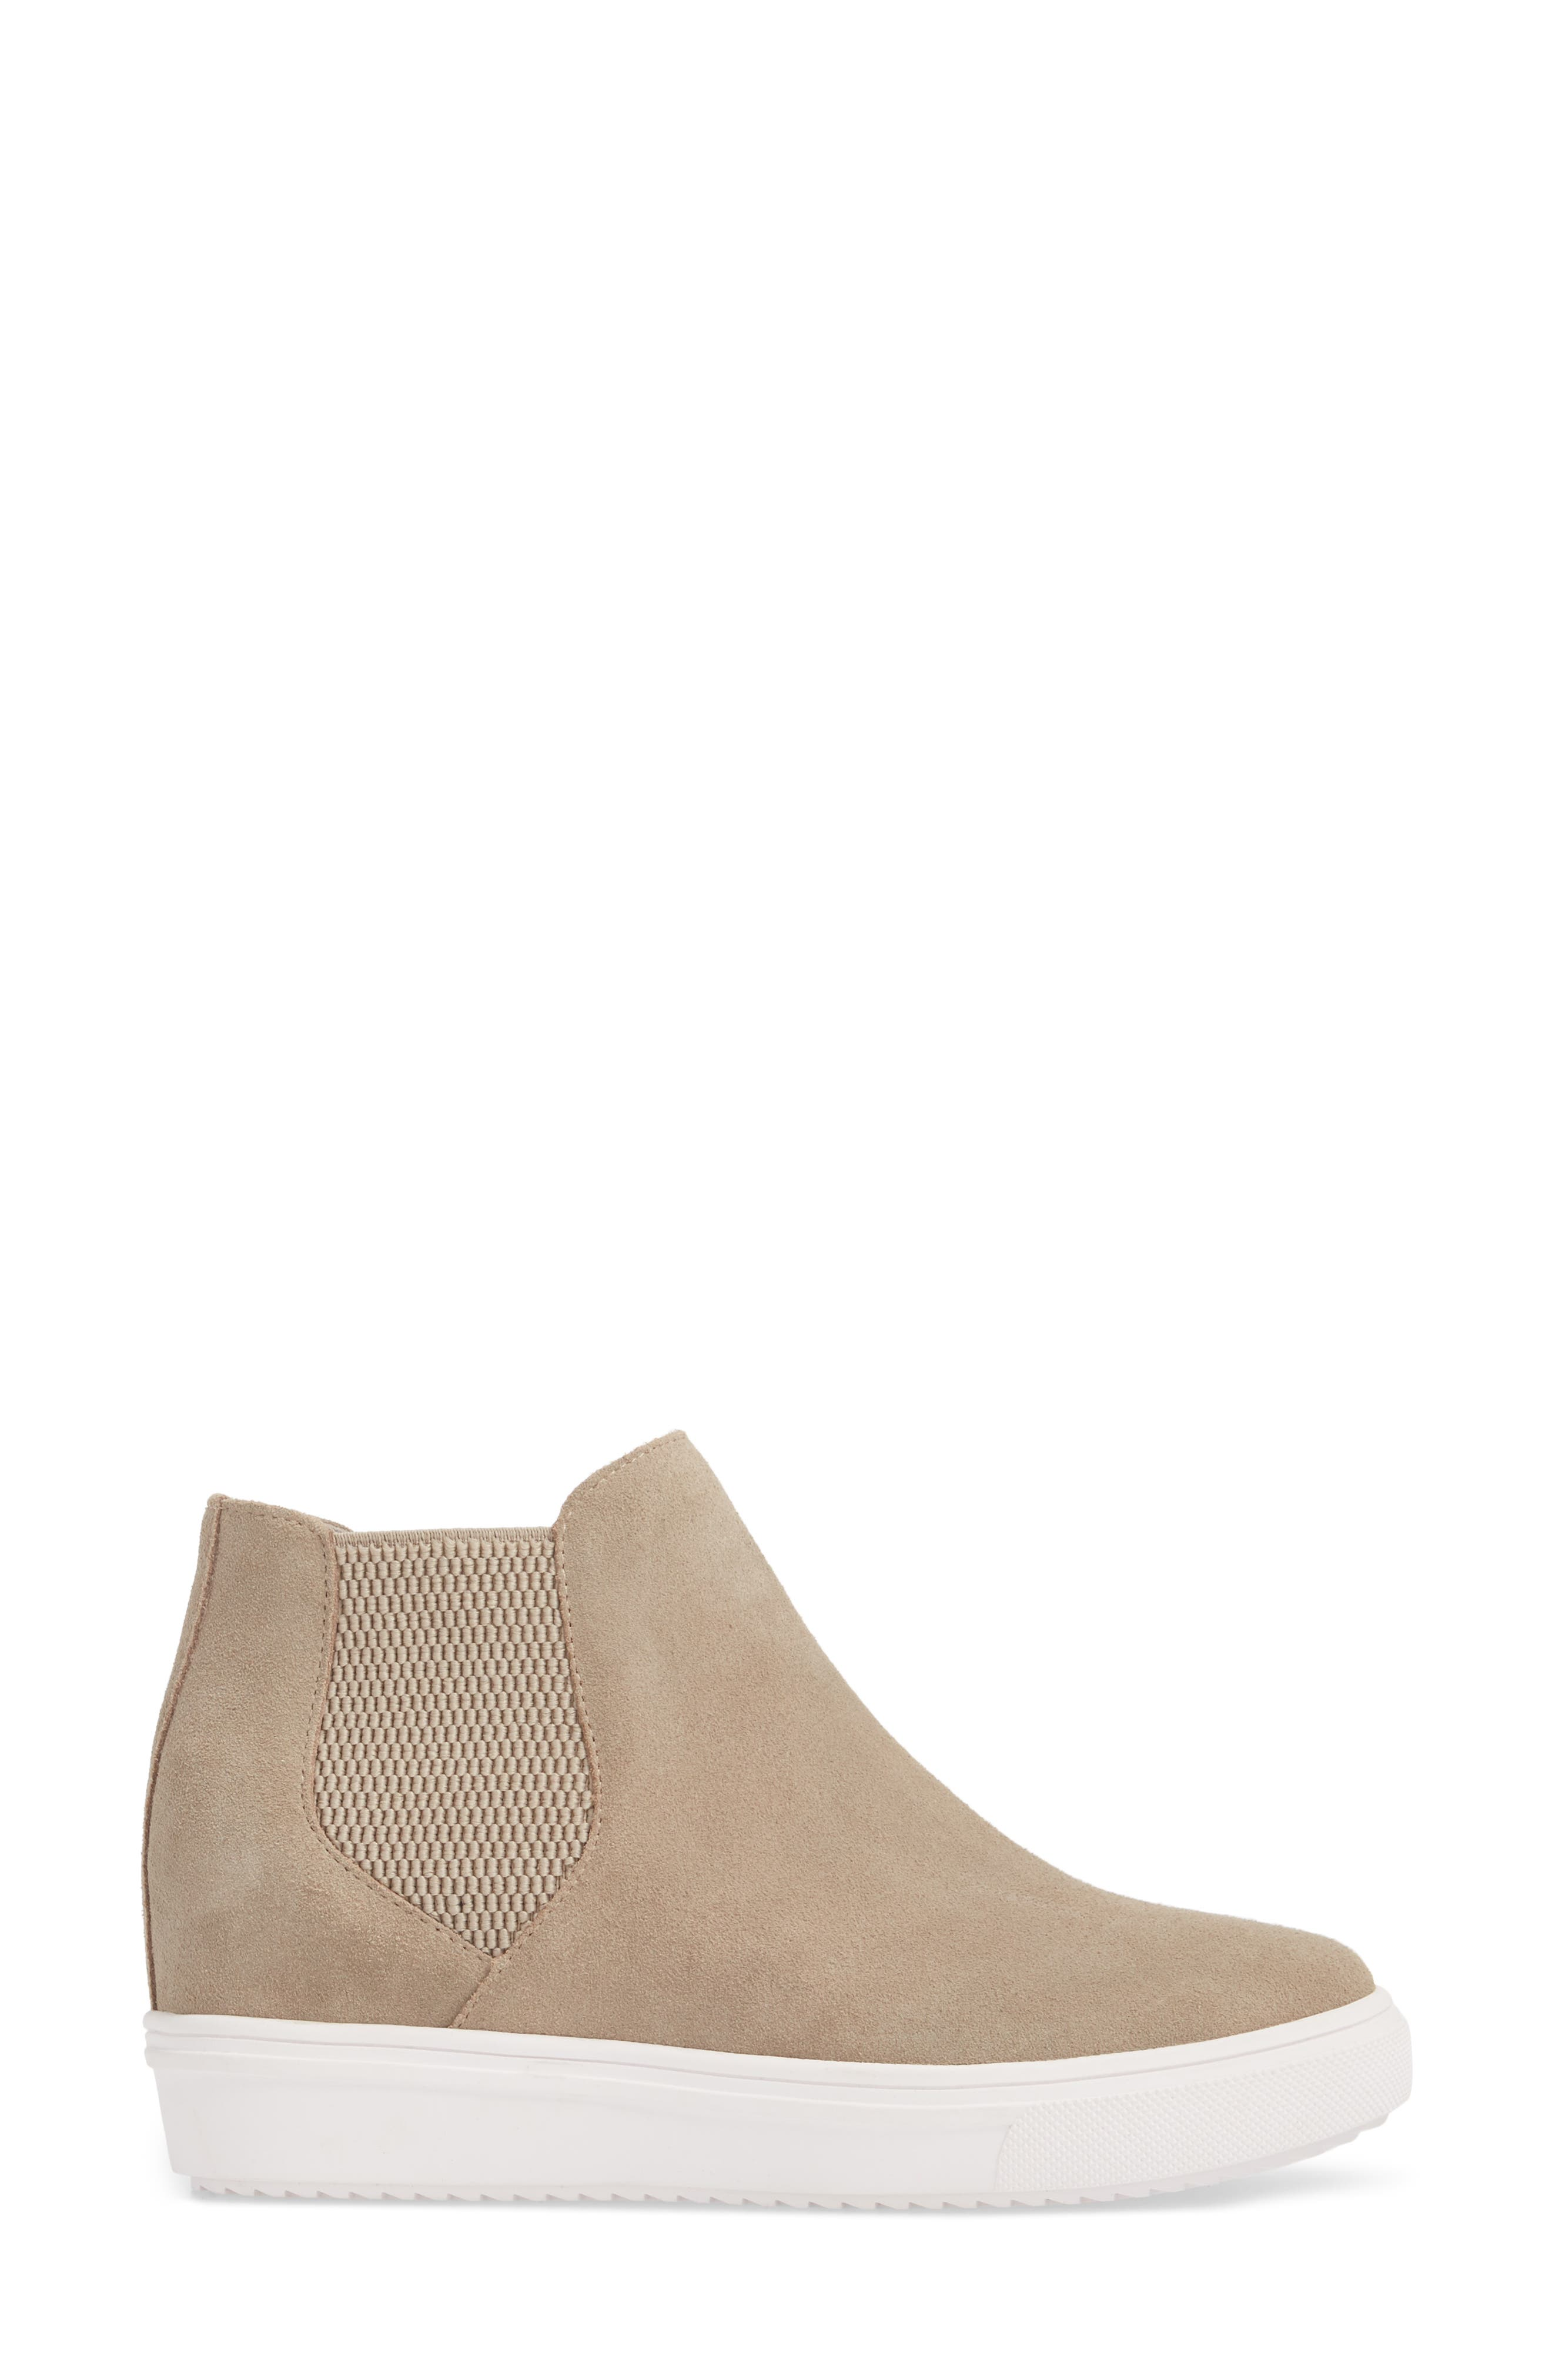 Sultan Chelsea Wedge Sneaker,                             Alternate thumbnail 3, color,                             TAUPE SUEDE